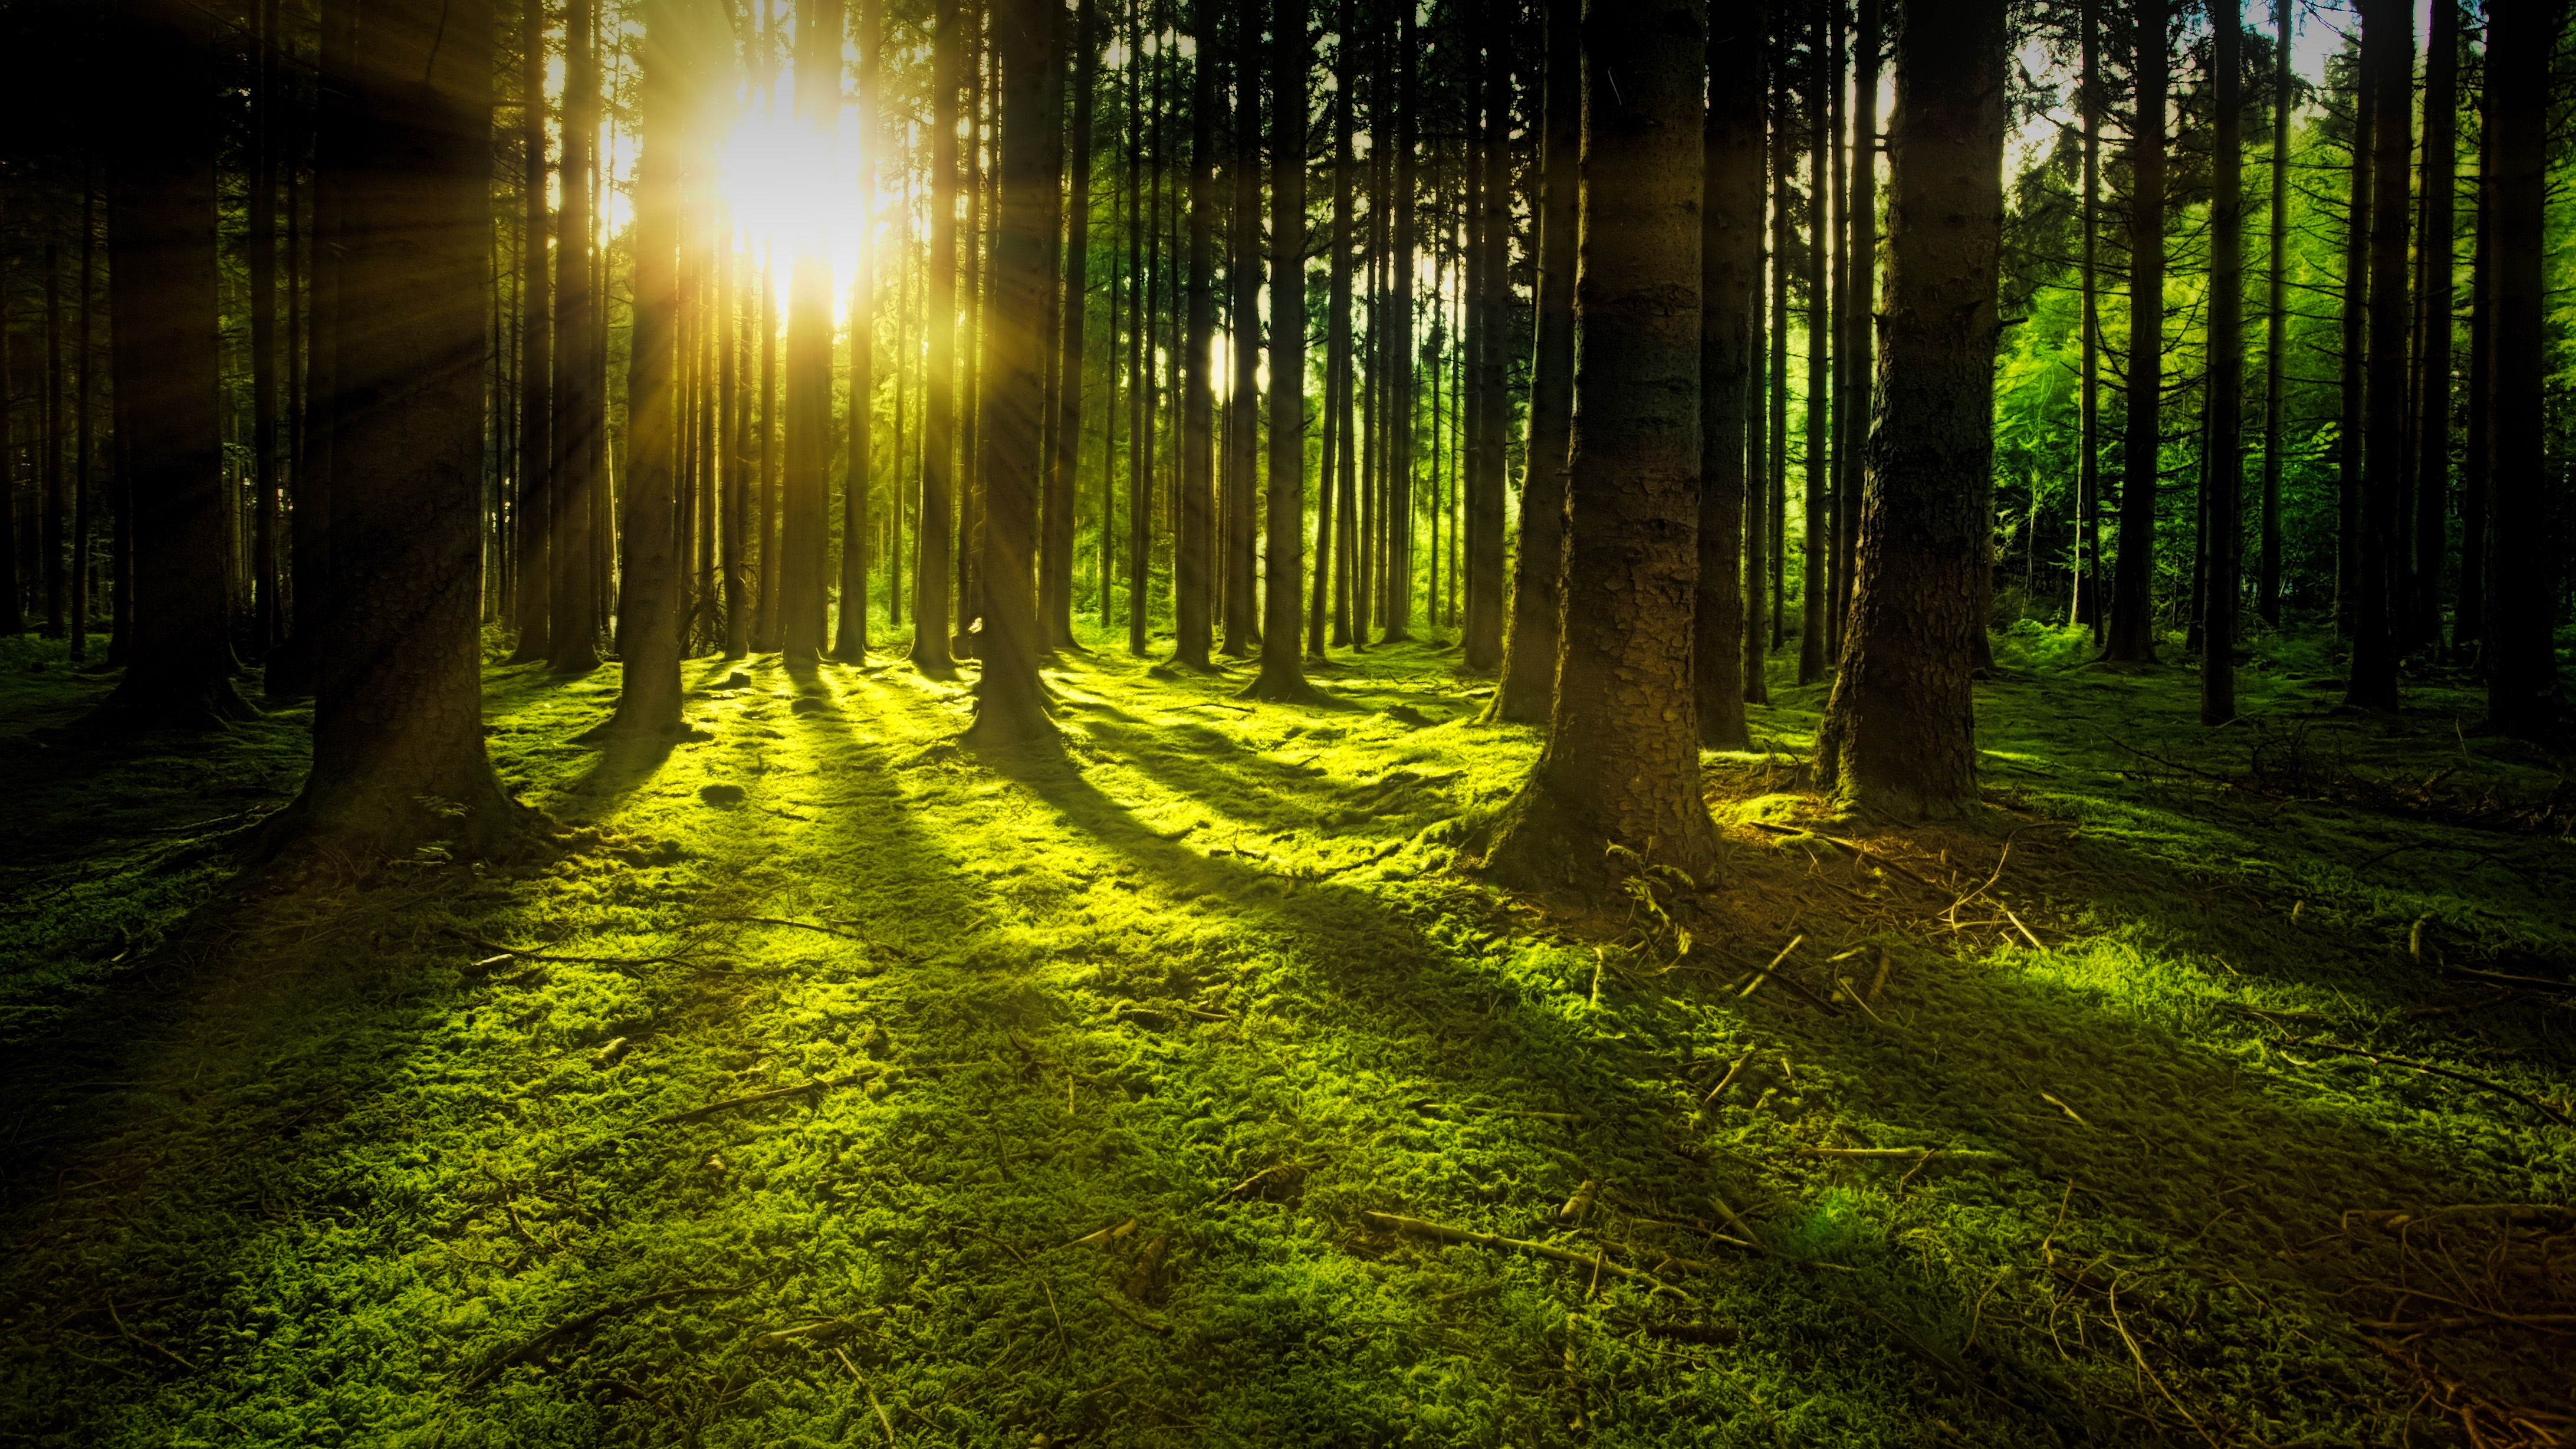 Black Wallpaper 4k Iphone X Ray Of Sunlight Flowing In Trees 183 Free Stock Photo